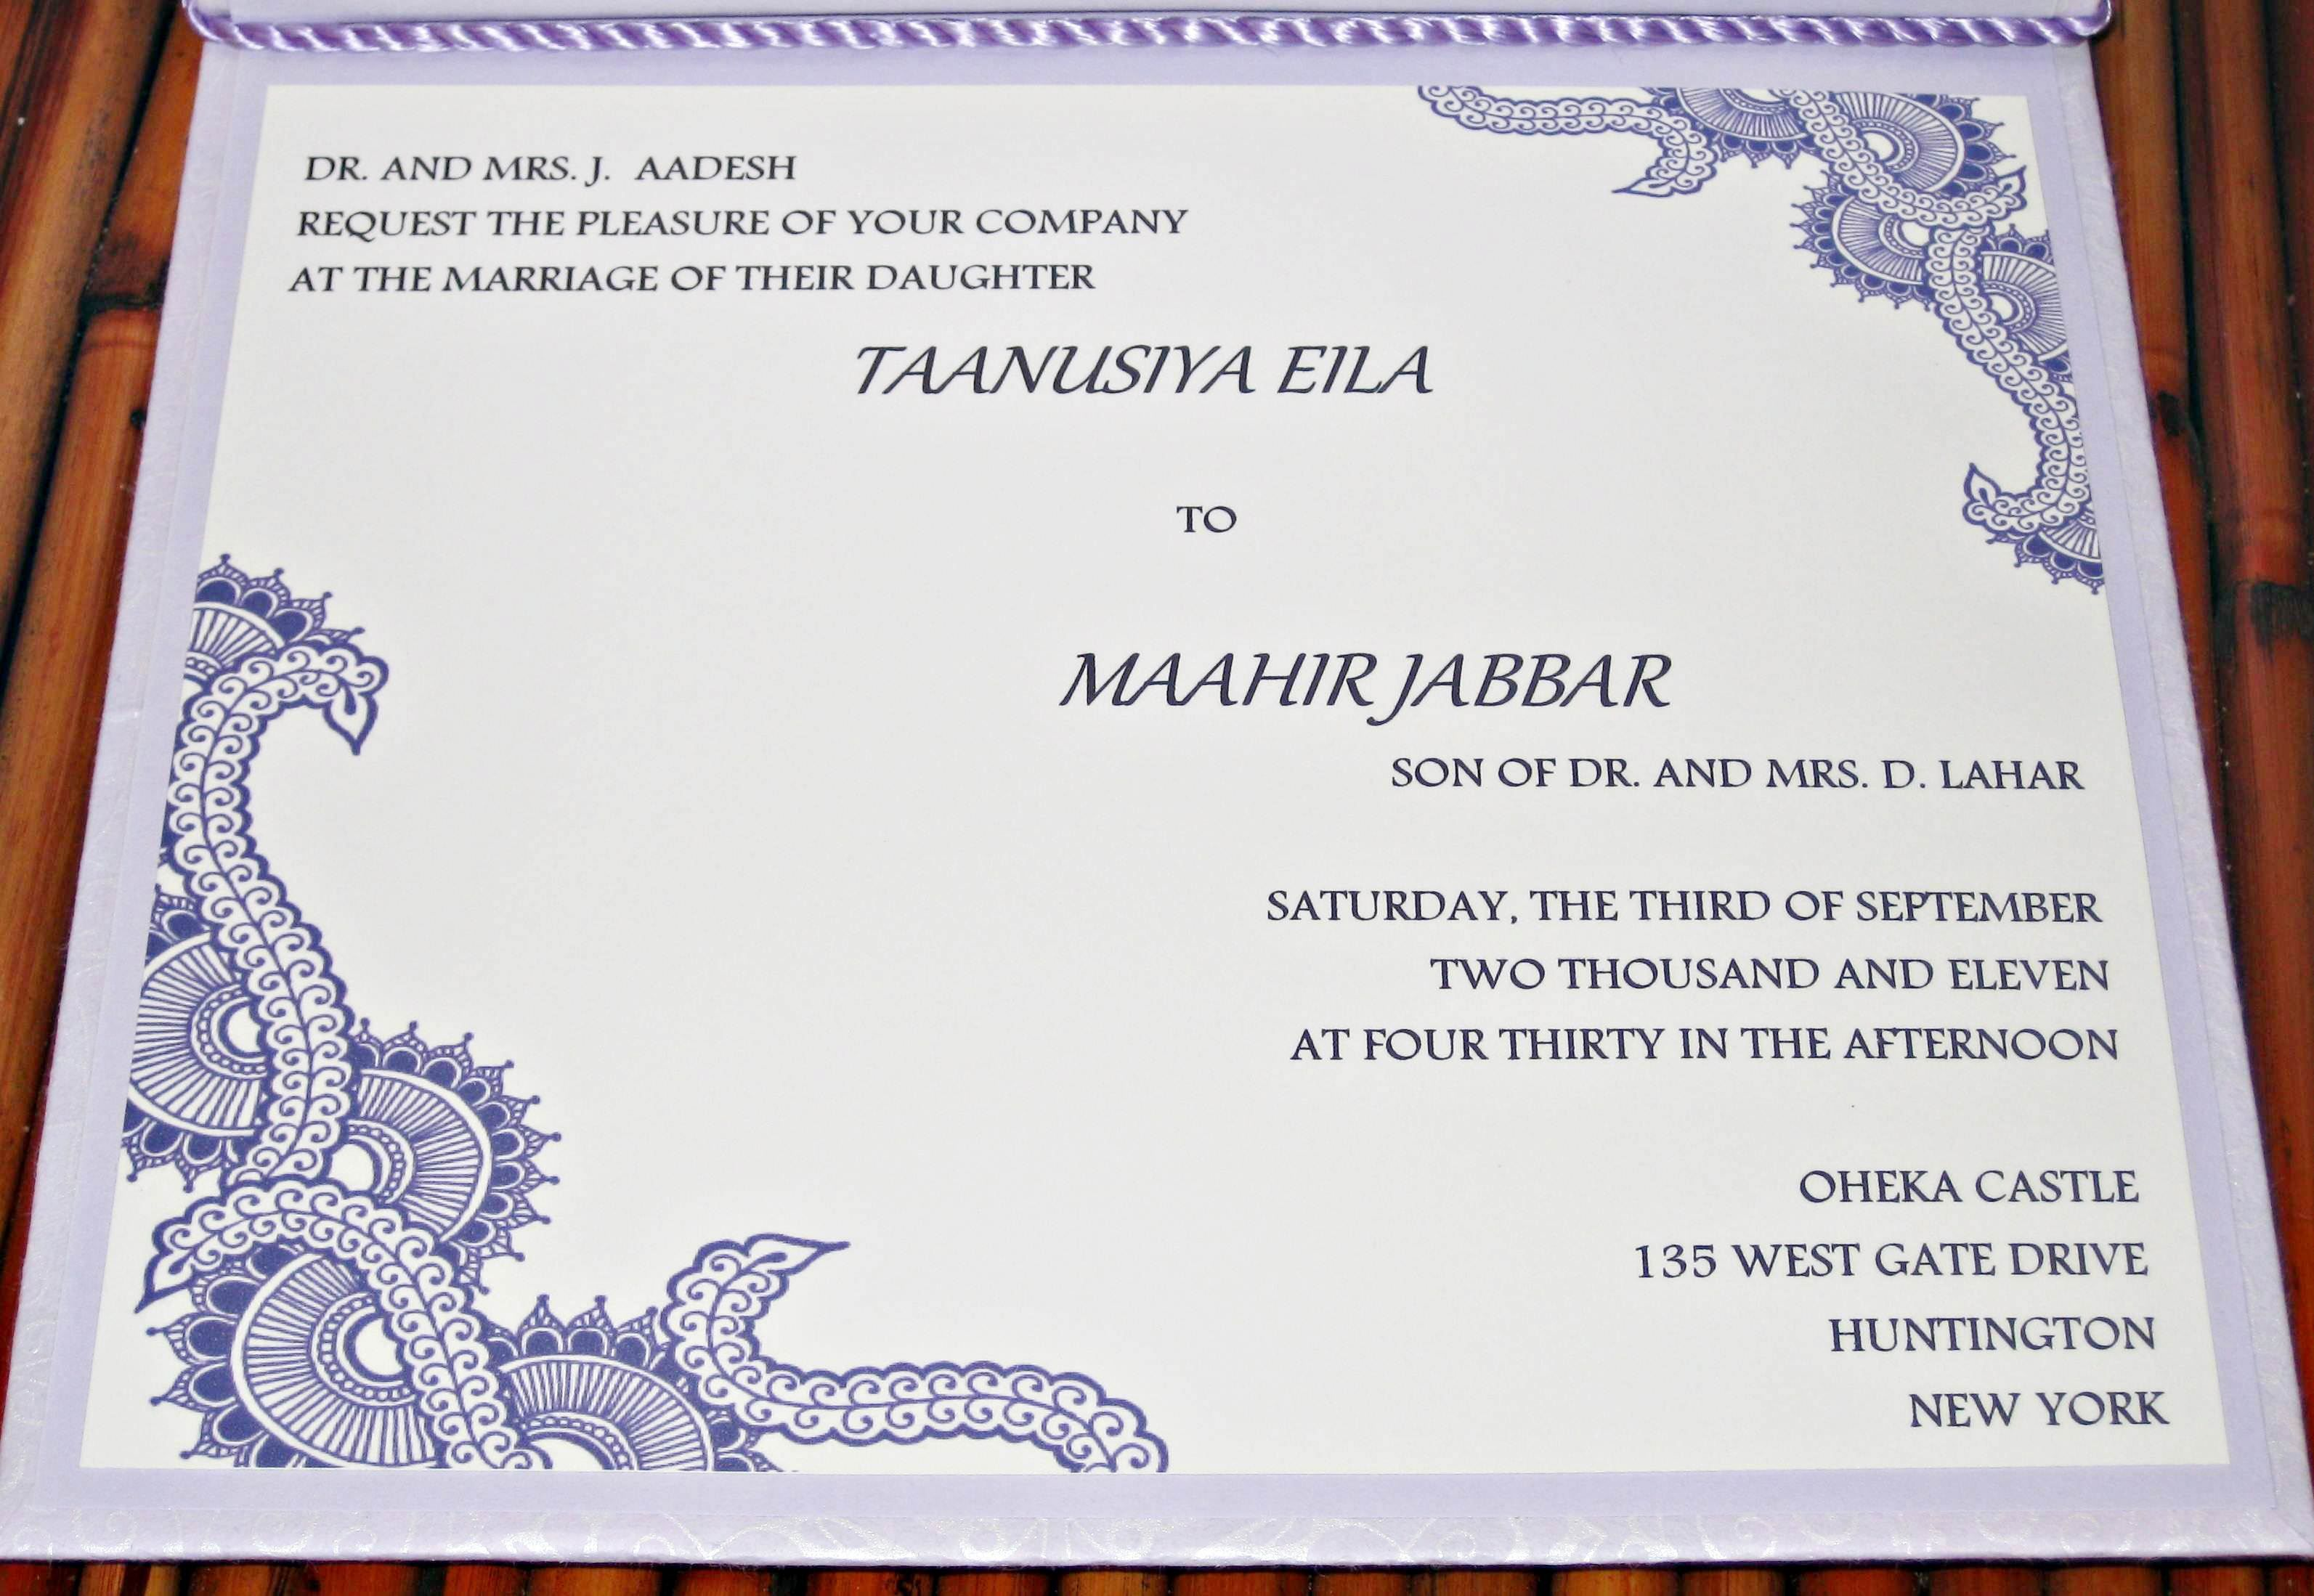 formatweddinginvitationcard wedding invitations – Example of Wedding Invitation Cards